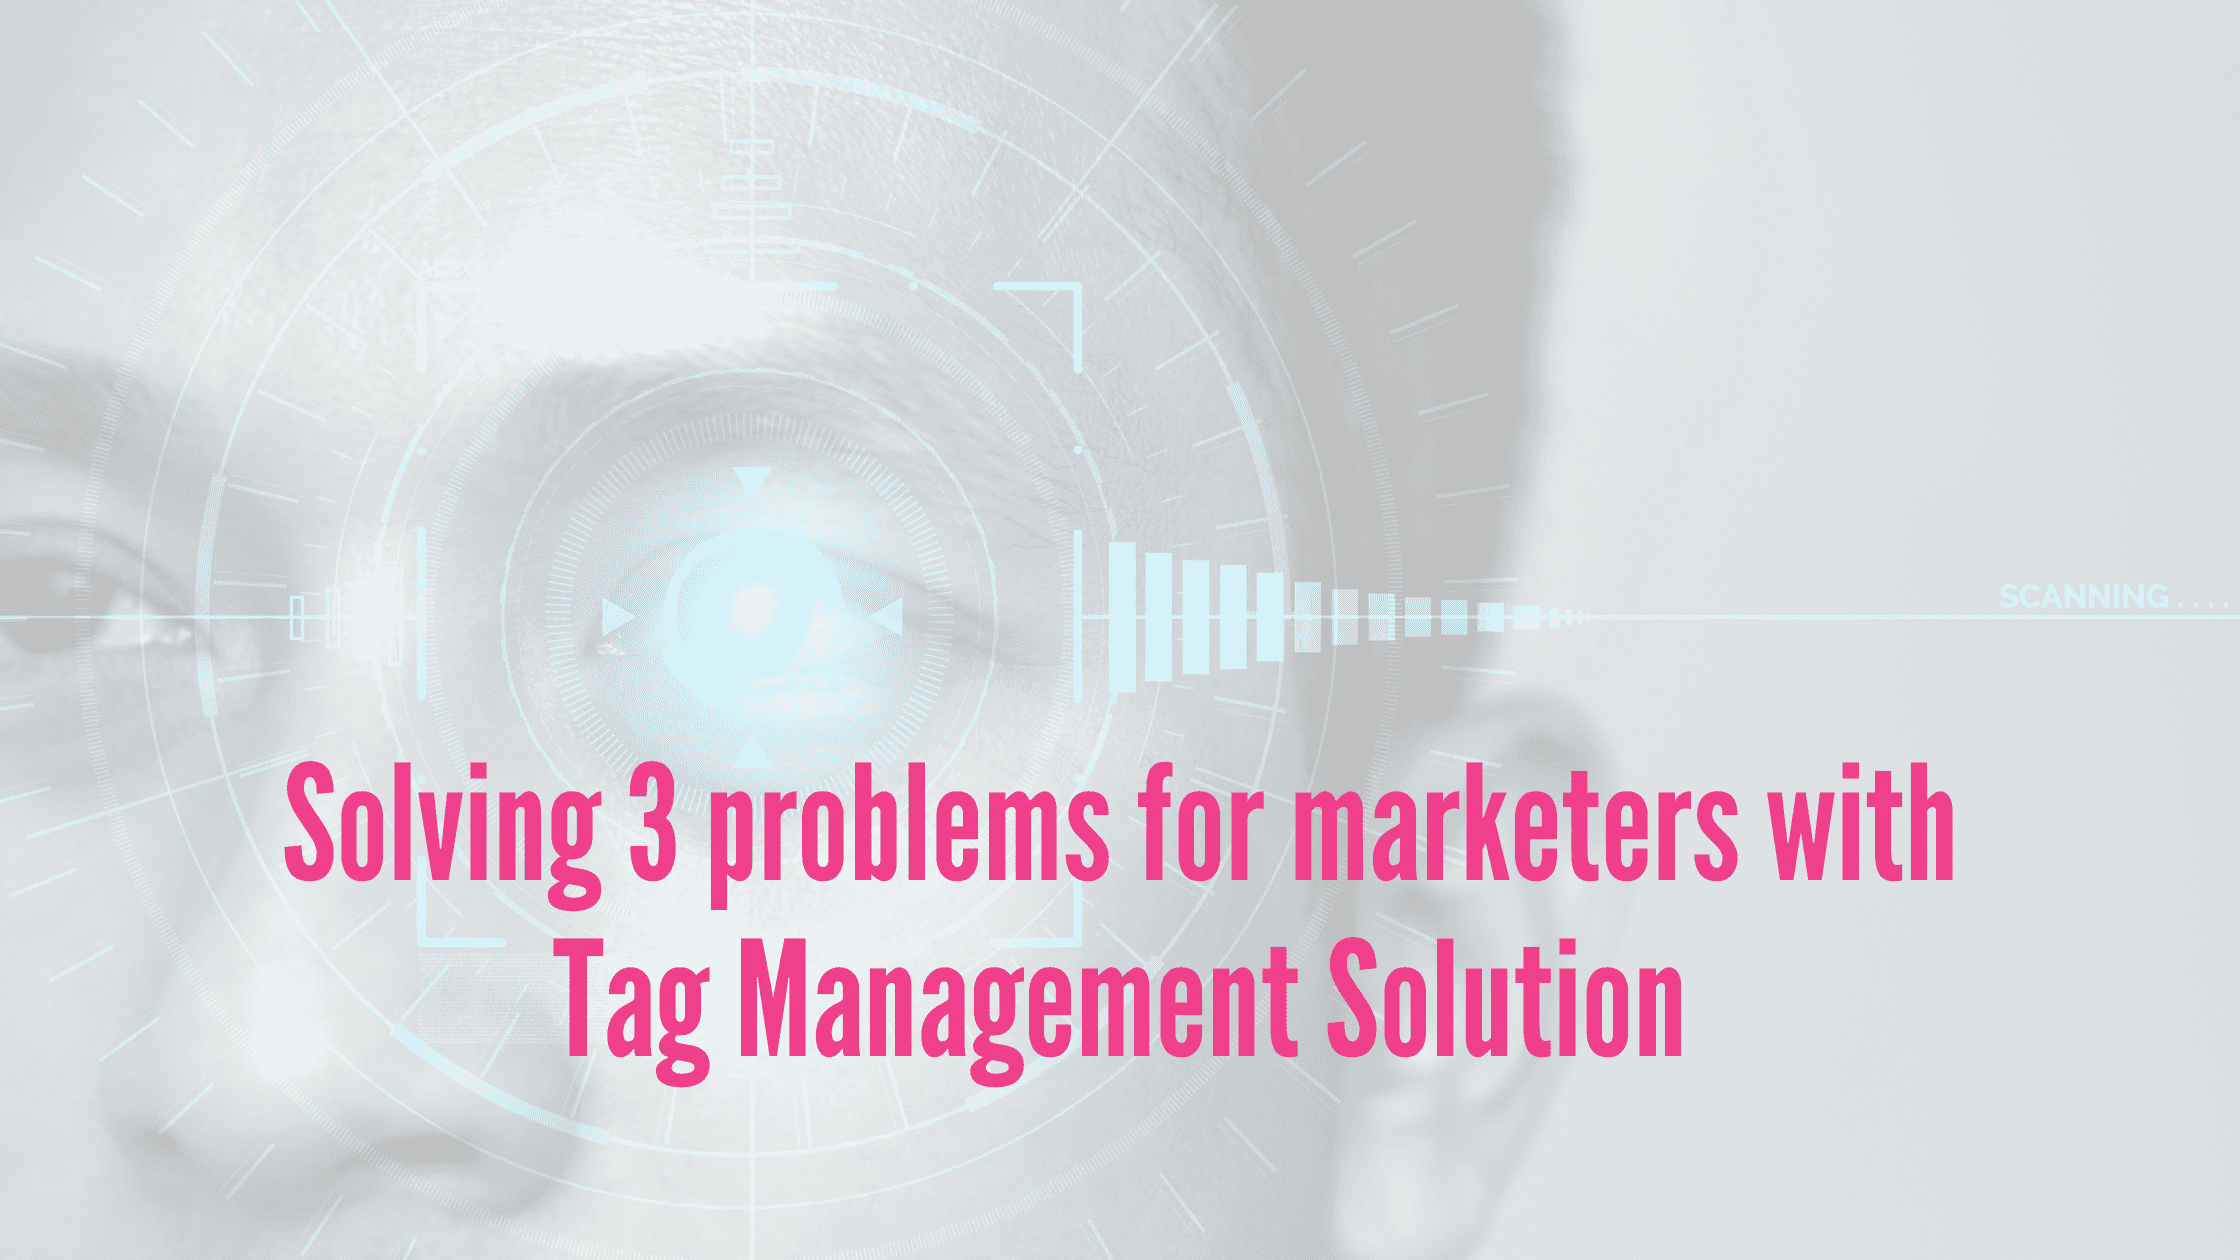 Tag management solution for marketers